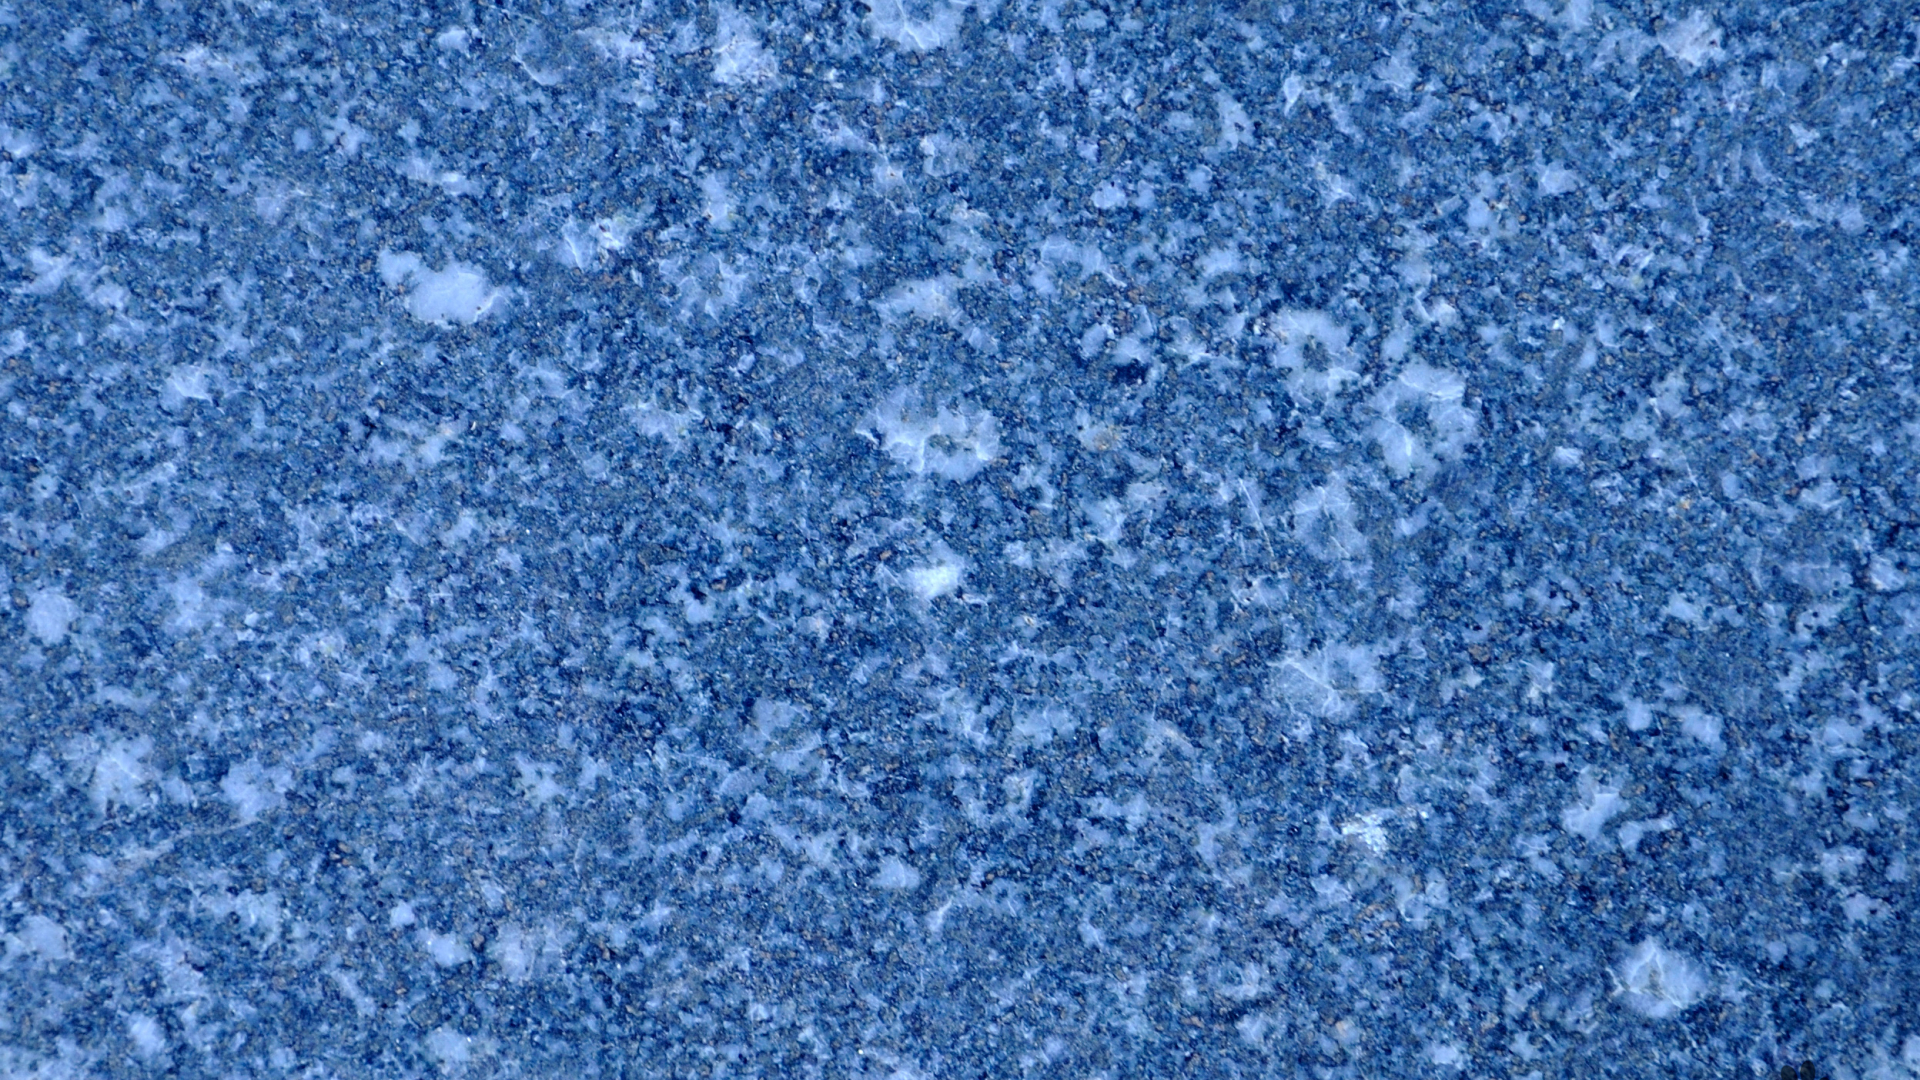 Free Download 29 Blue Marble Stone Hd Wallpapers 2494x1658 For